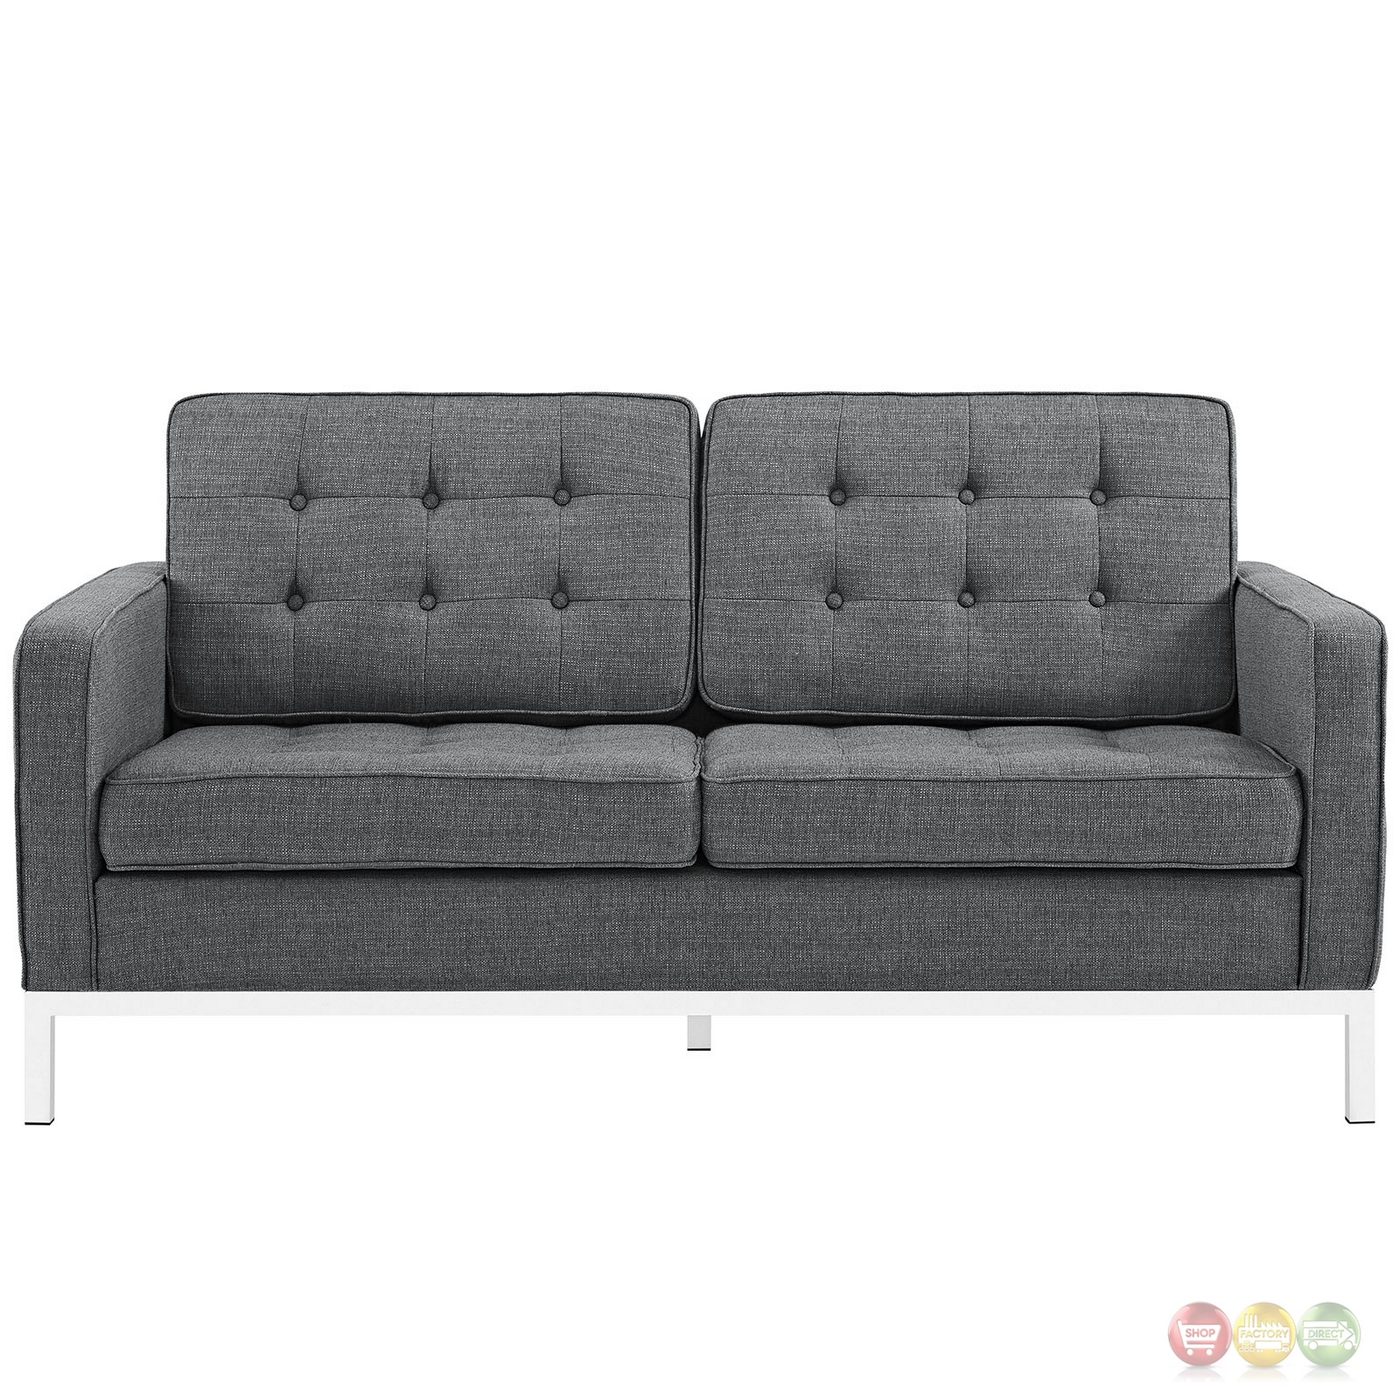 Loft Contemporary Button Tufted Upholstered Loveseat W Chrome Base Gray